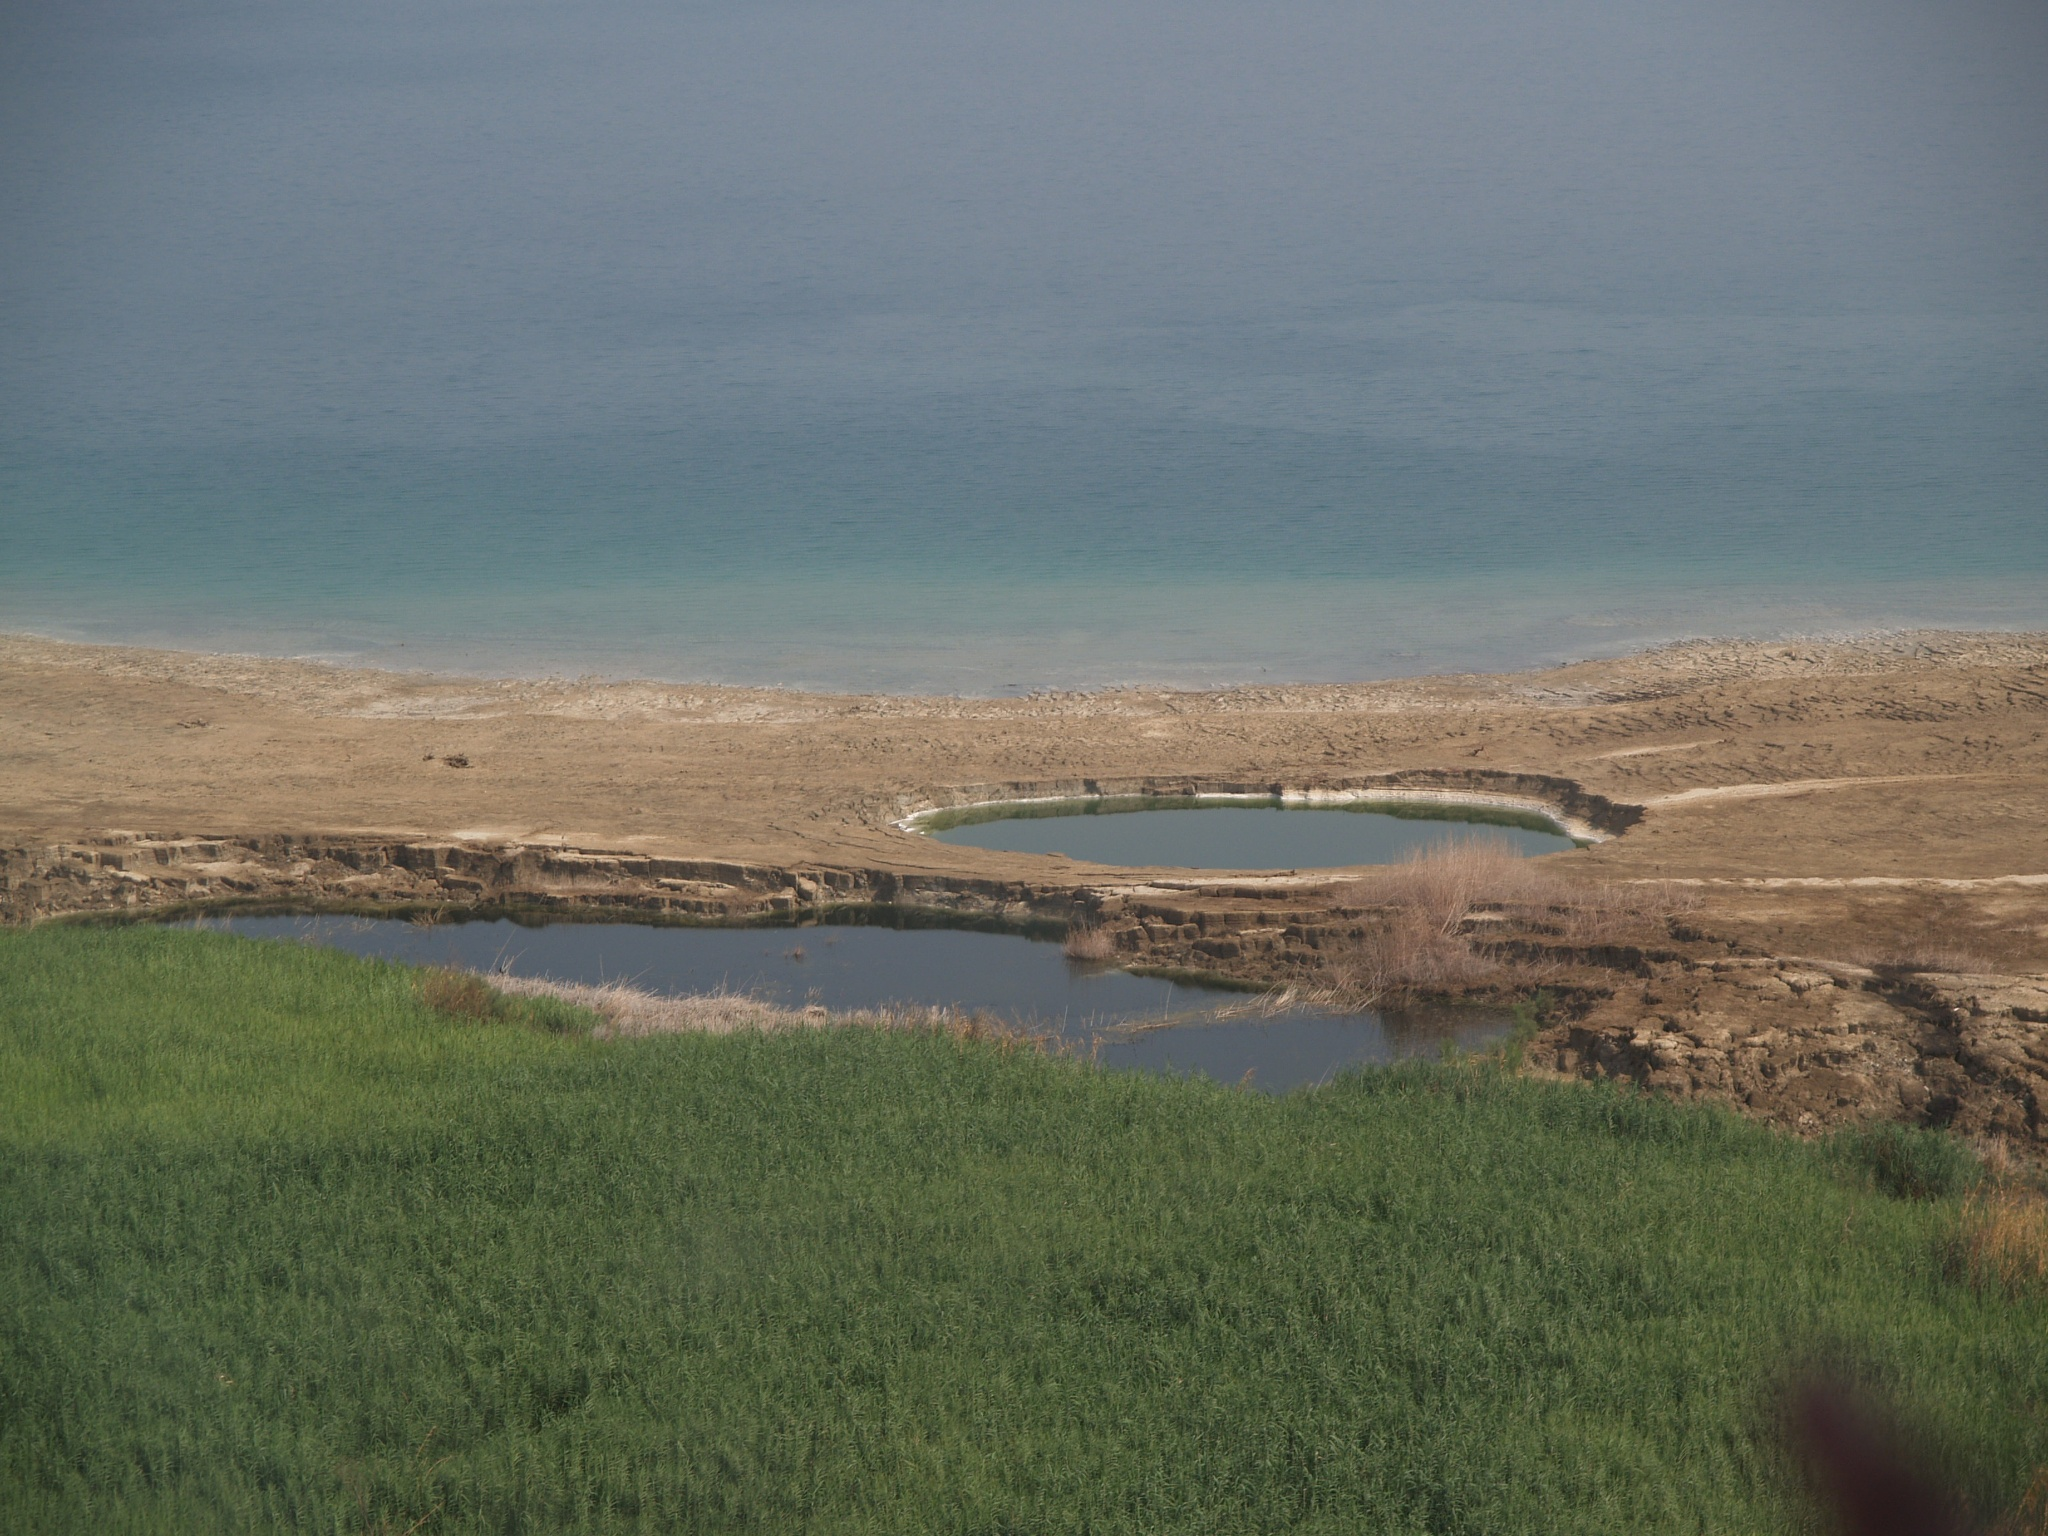 Dead Sea, Israel by Eassa